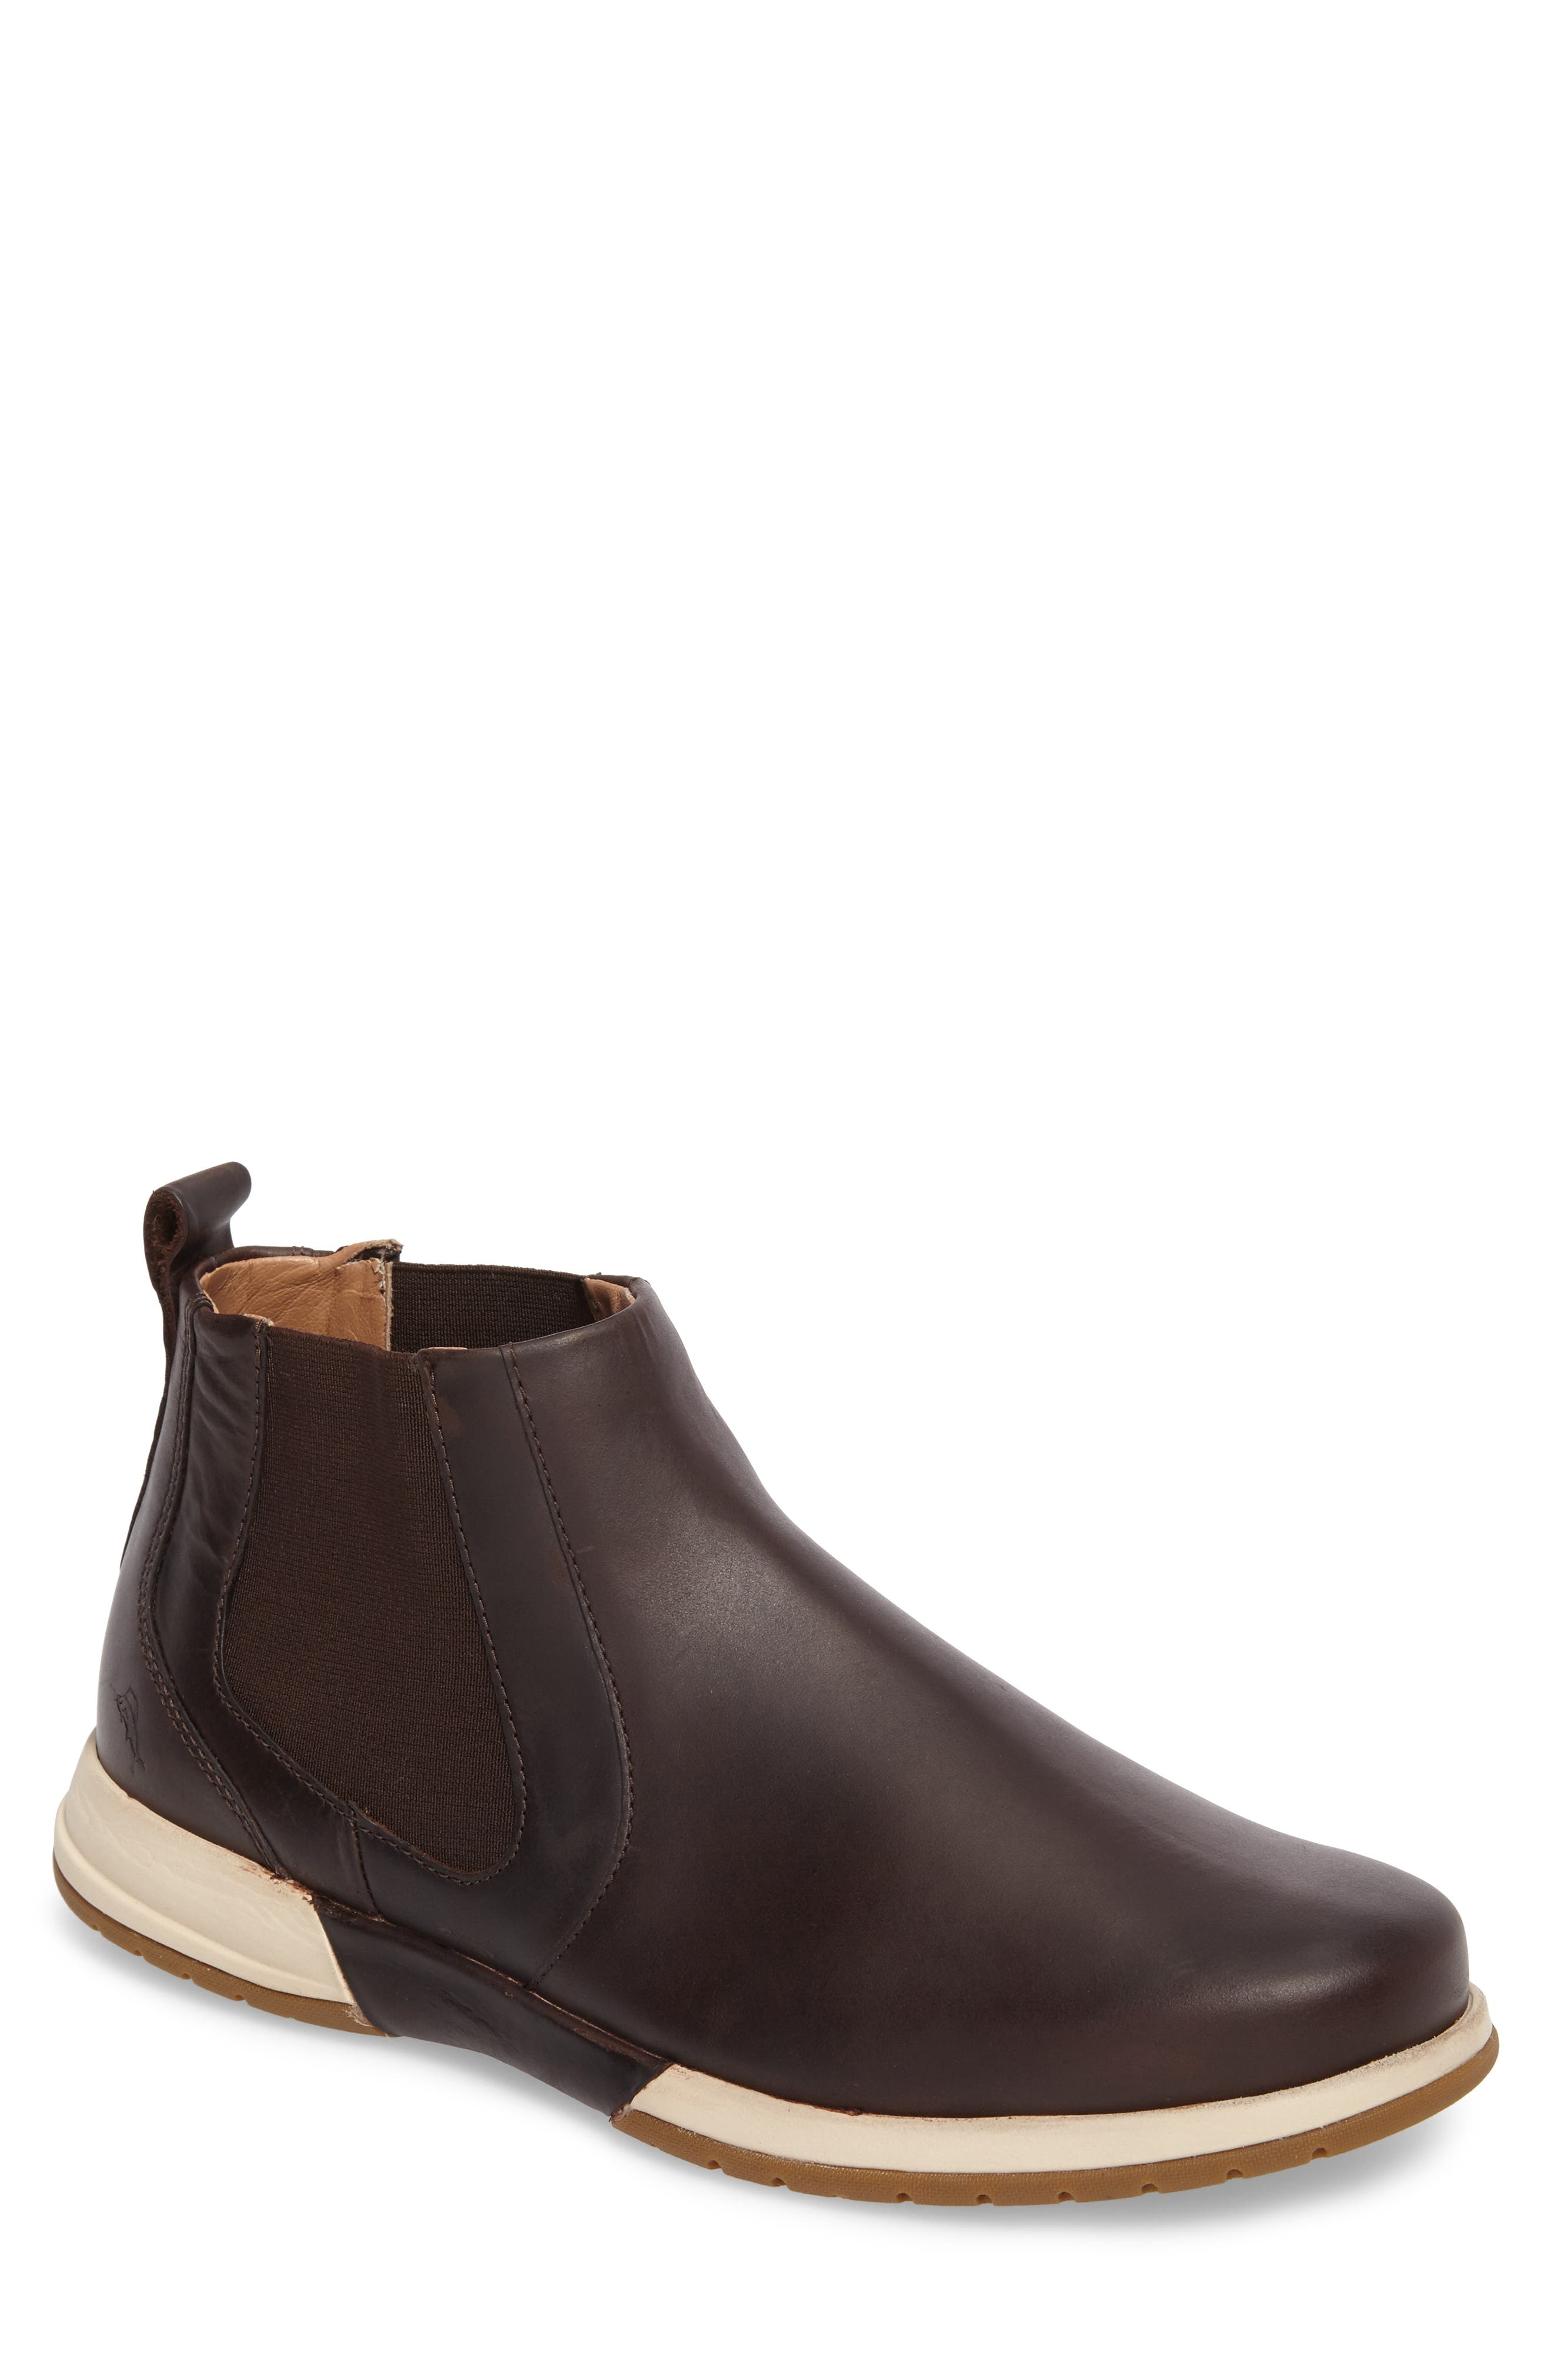 Tommy Bahama Santiago Chelsea Boot, Brown